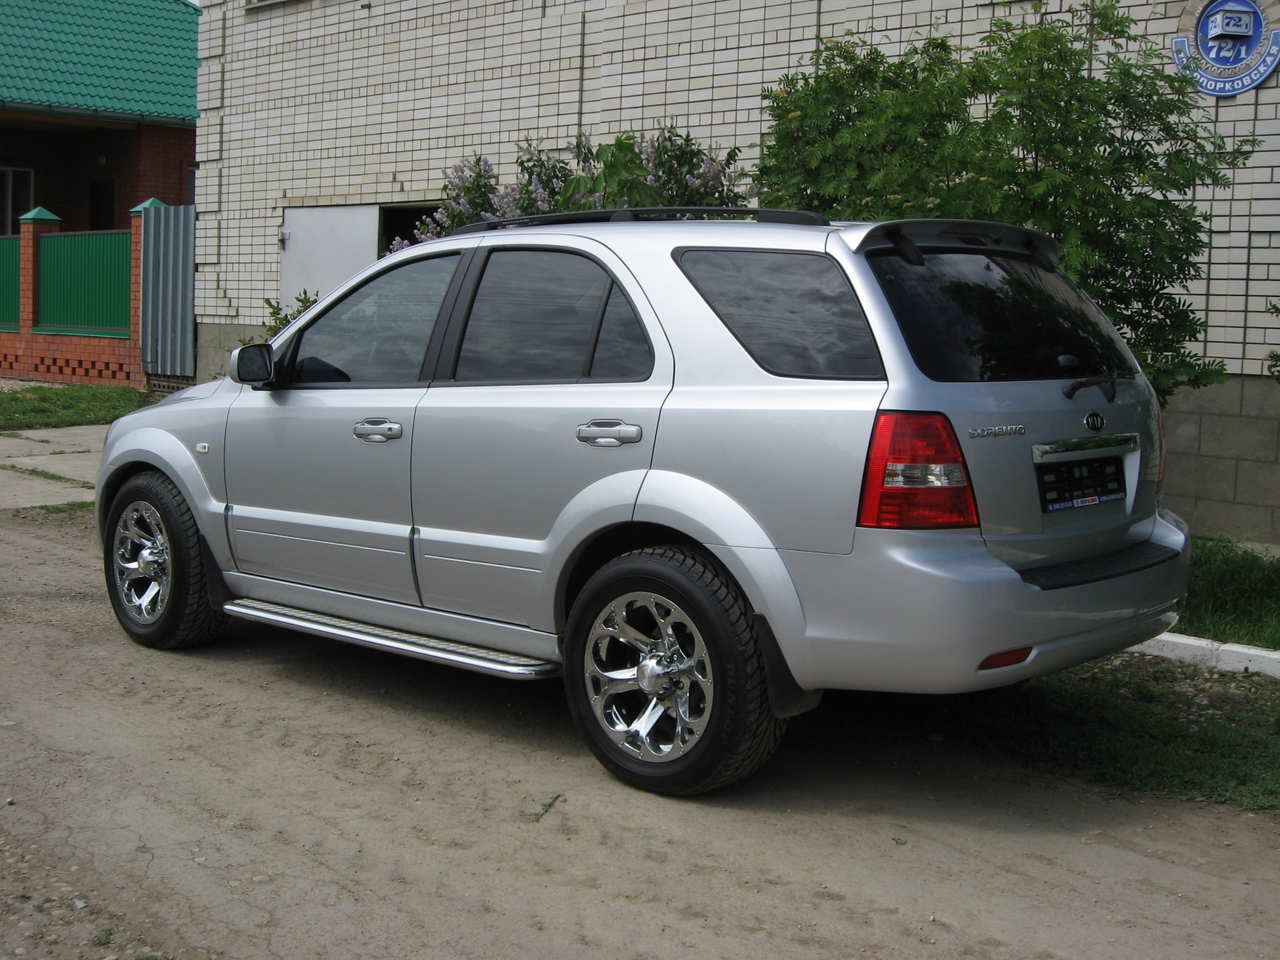 2007 kia sorento pictures diesel automatic for sale. Black Bedroom Furniture Sets. Home Design Ideas